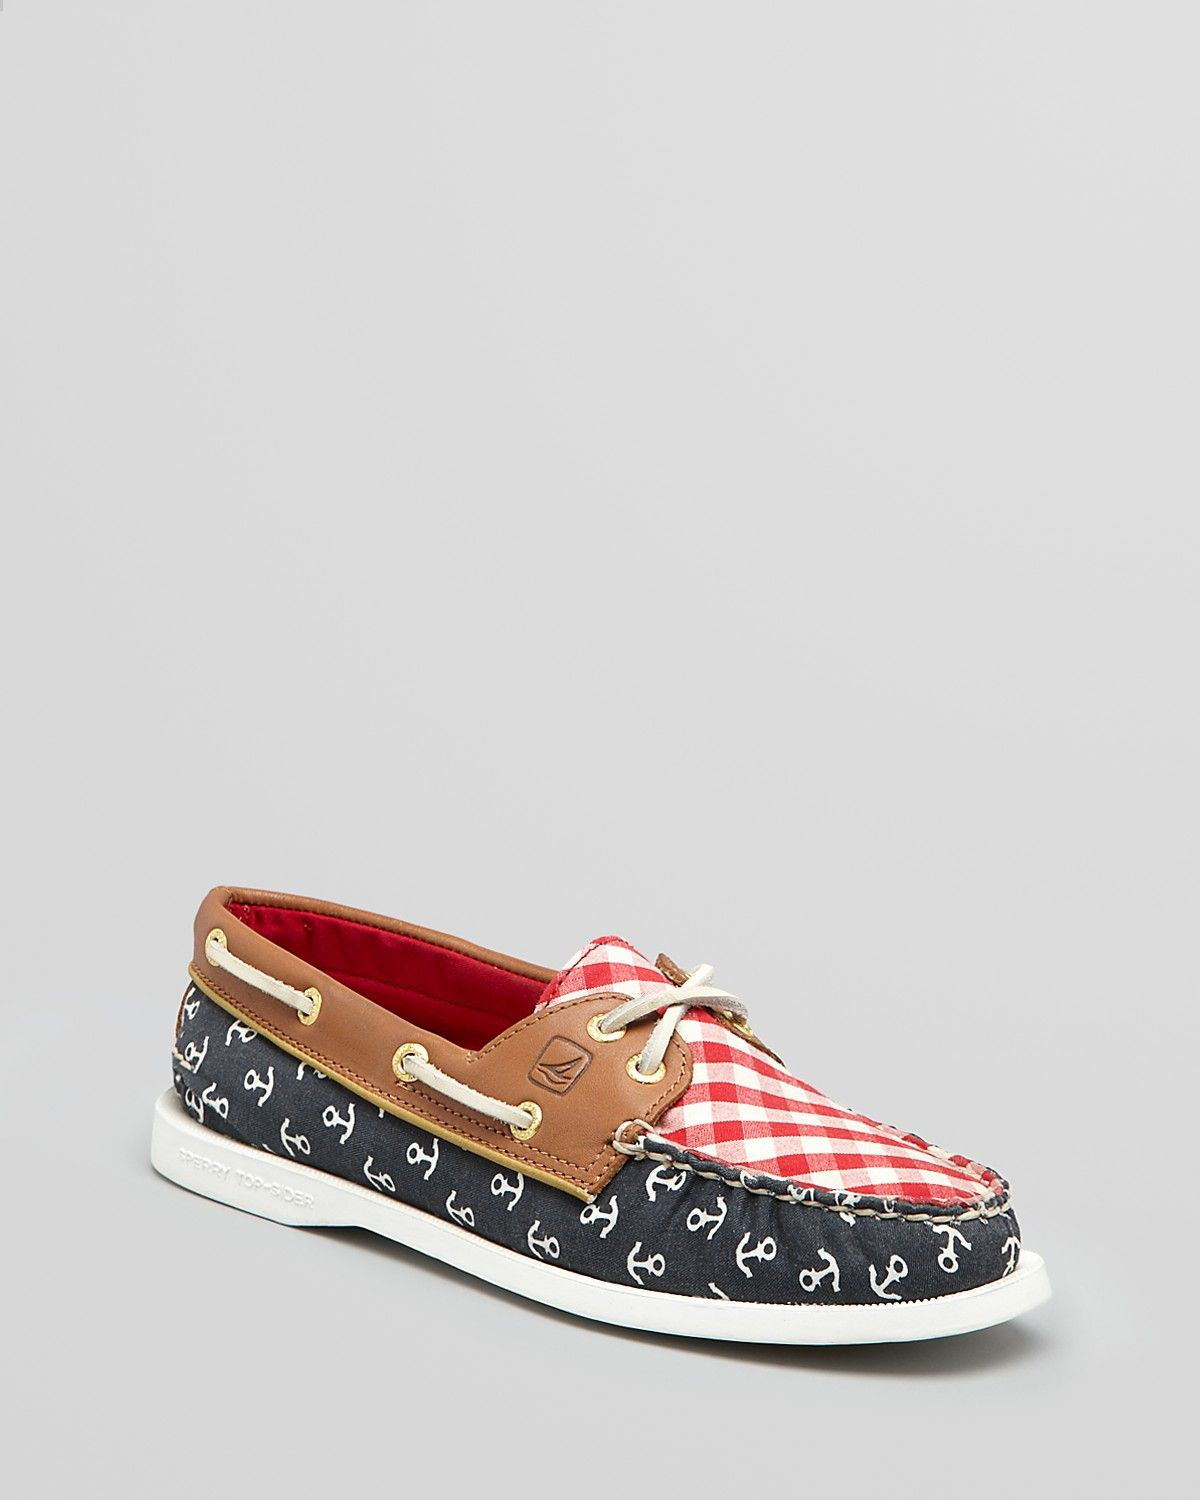 Sperry Topsider Nautical Boat Shoes In sWwM2LJDe